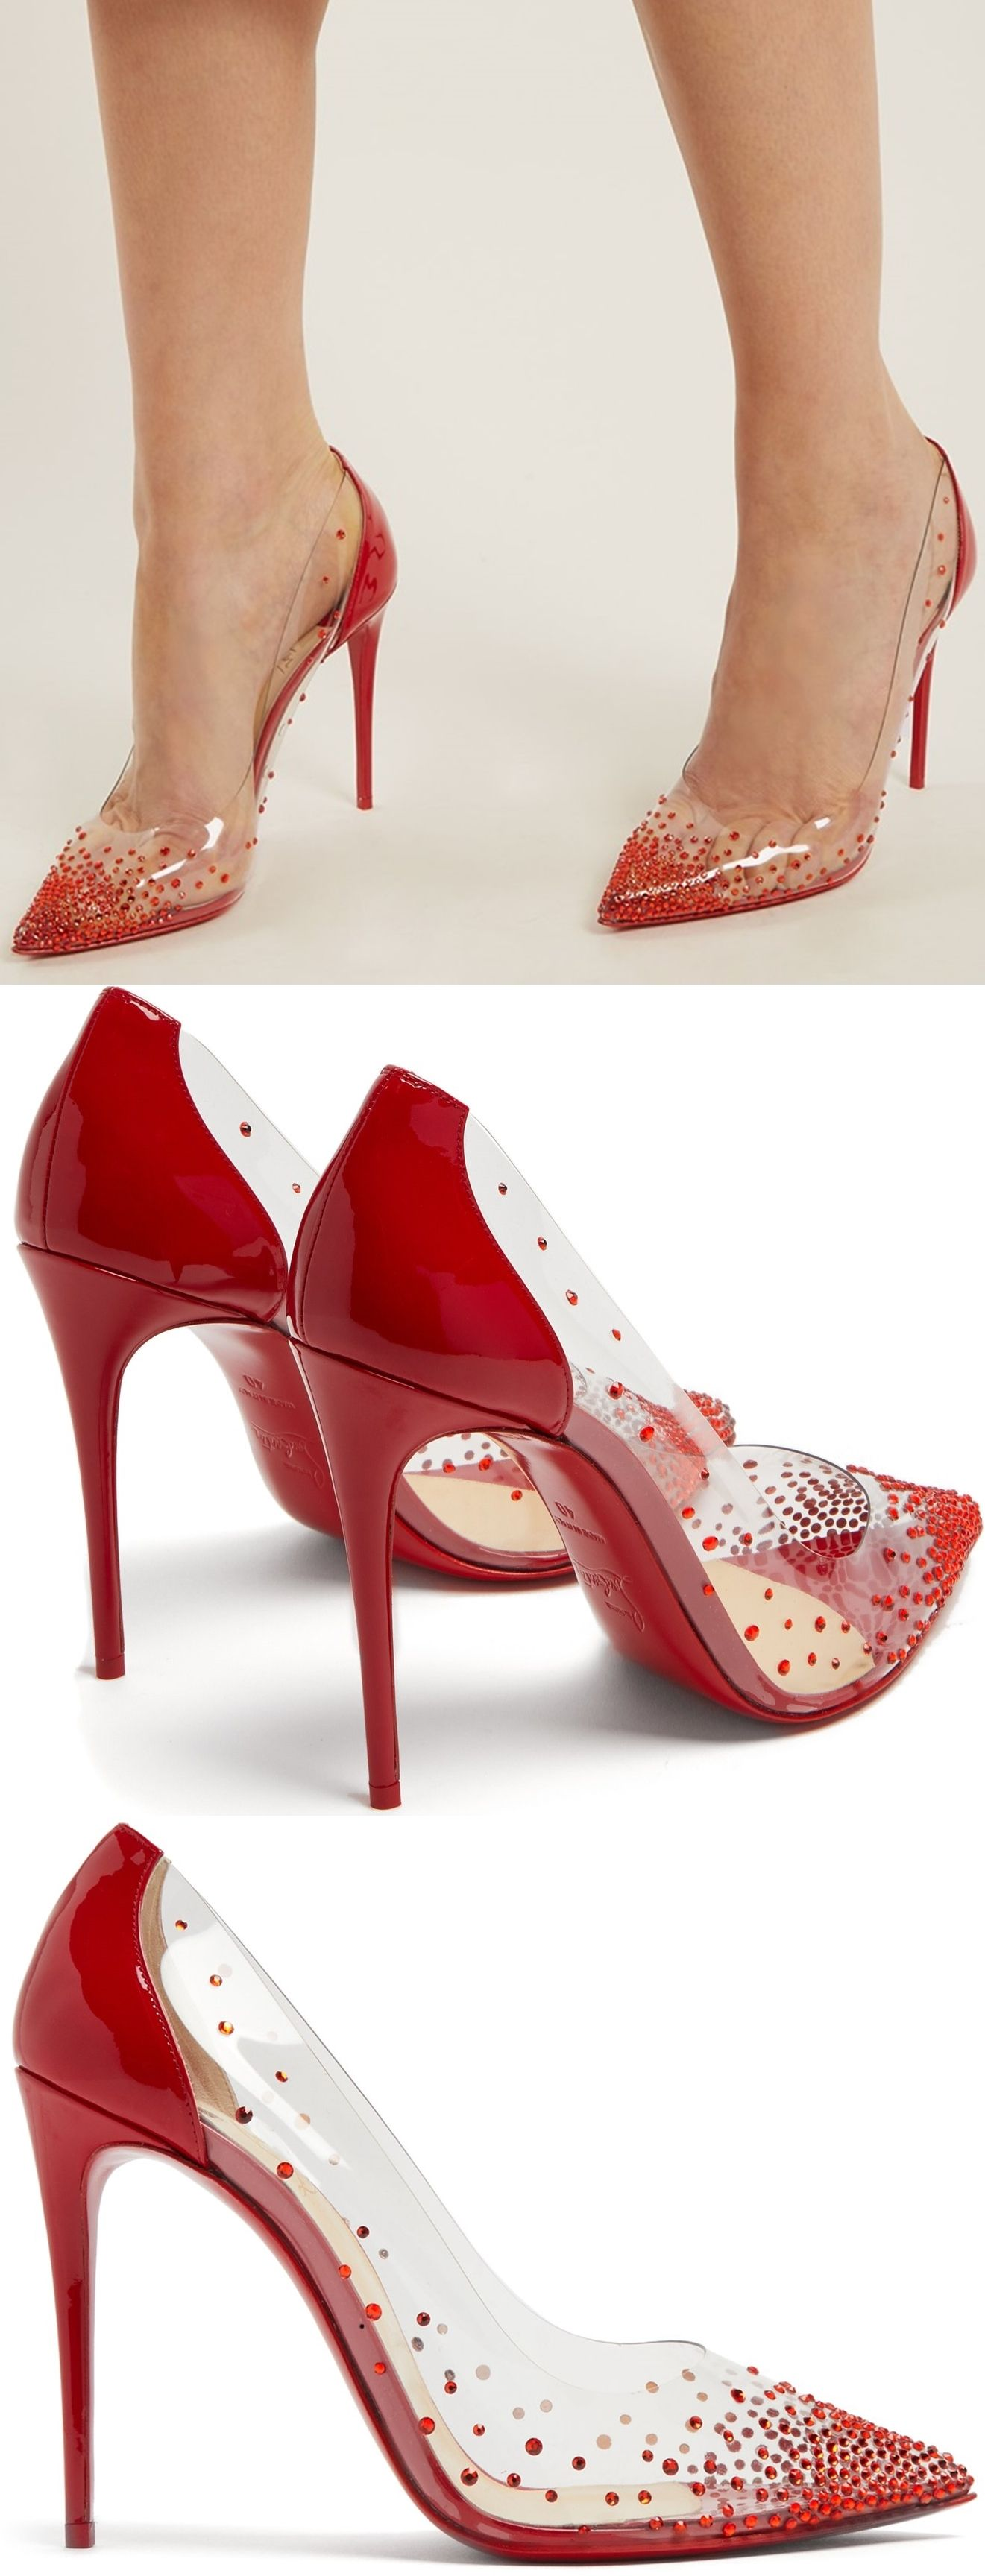 e03b93fa937 Assembled from clear PVC and red patent leather